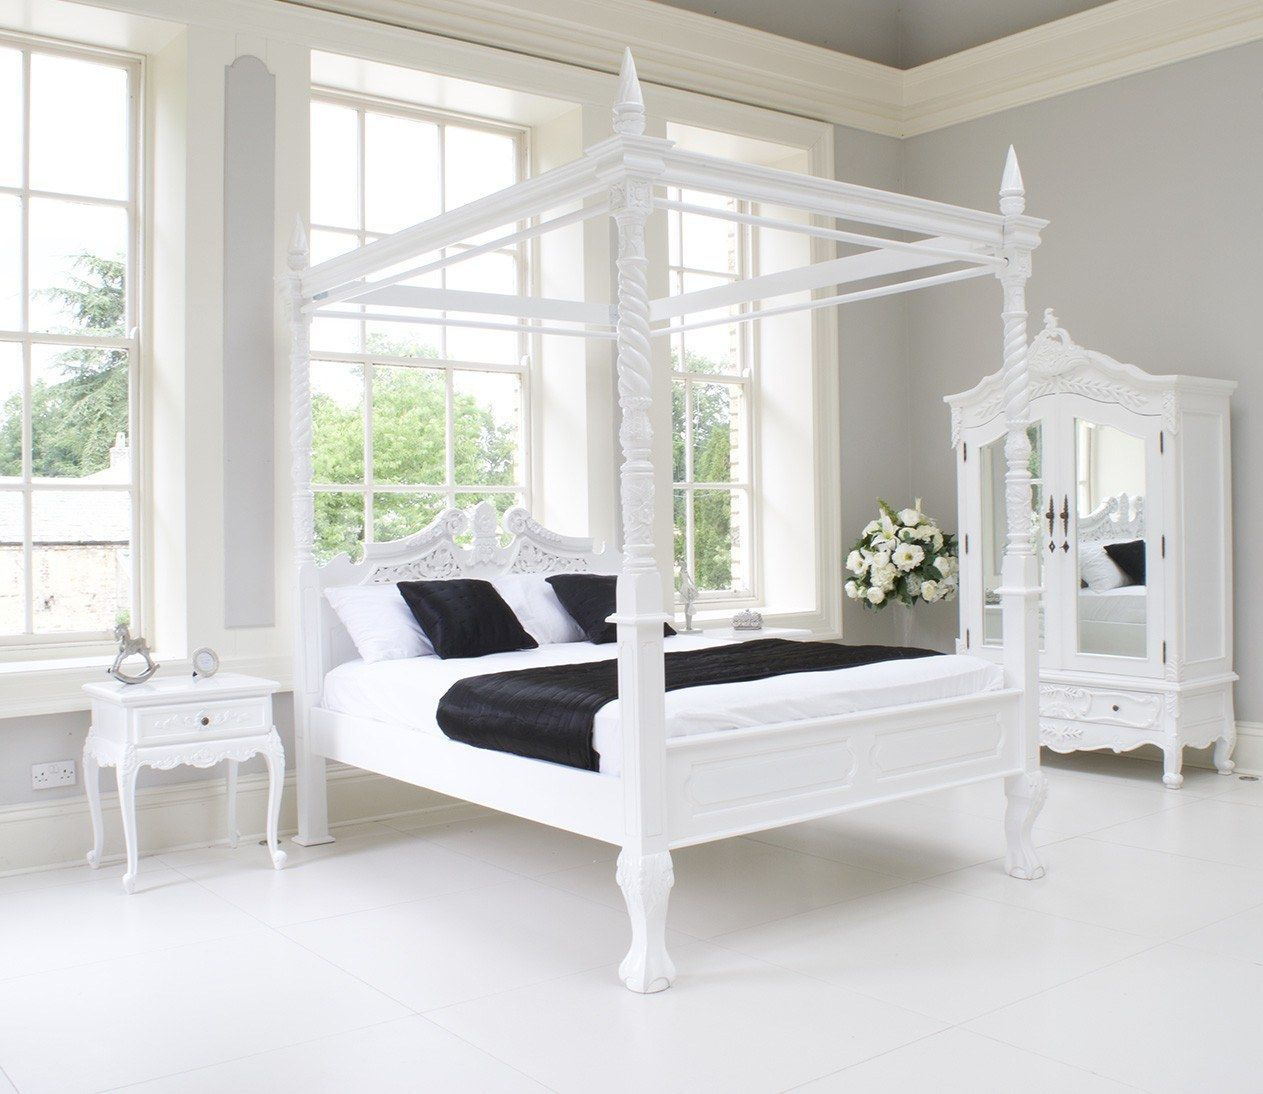 French Beds Four Poster Cau Bed In White